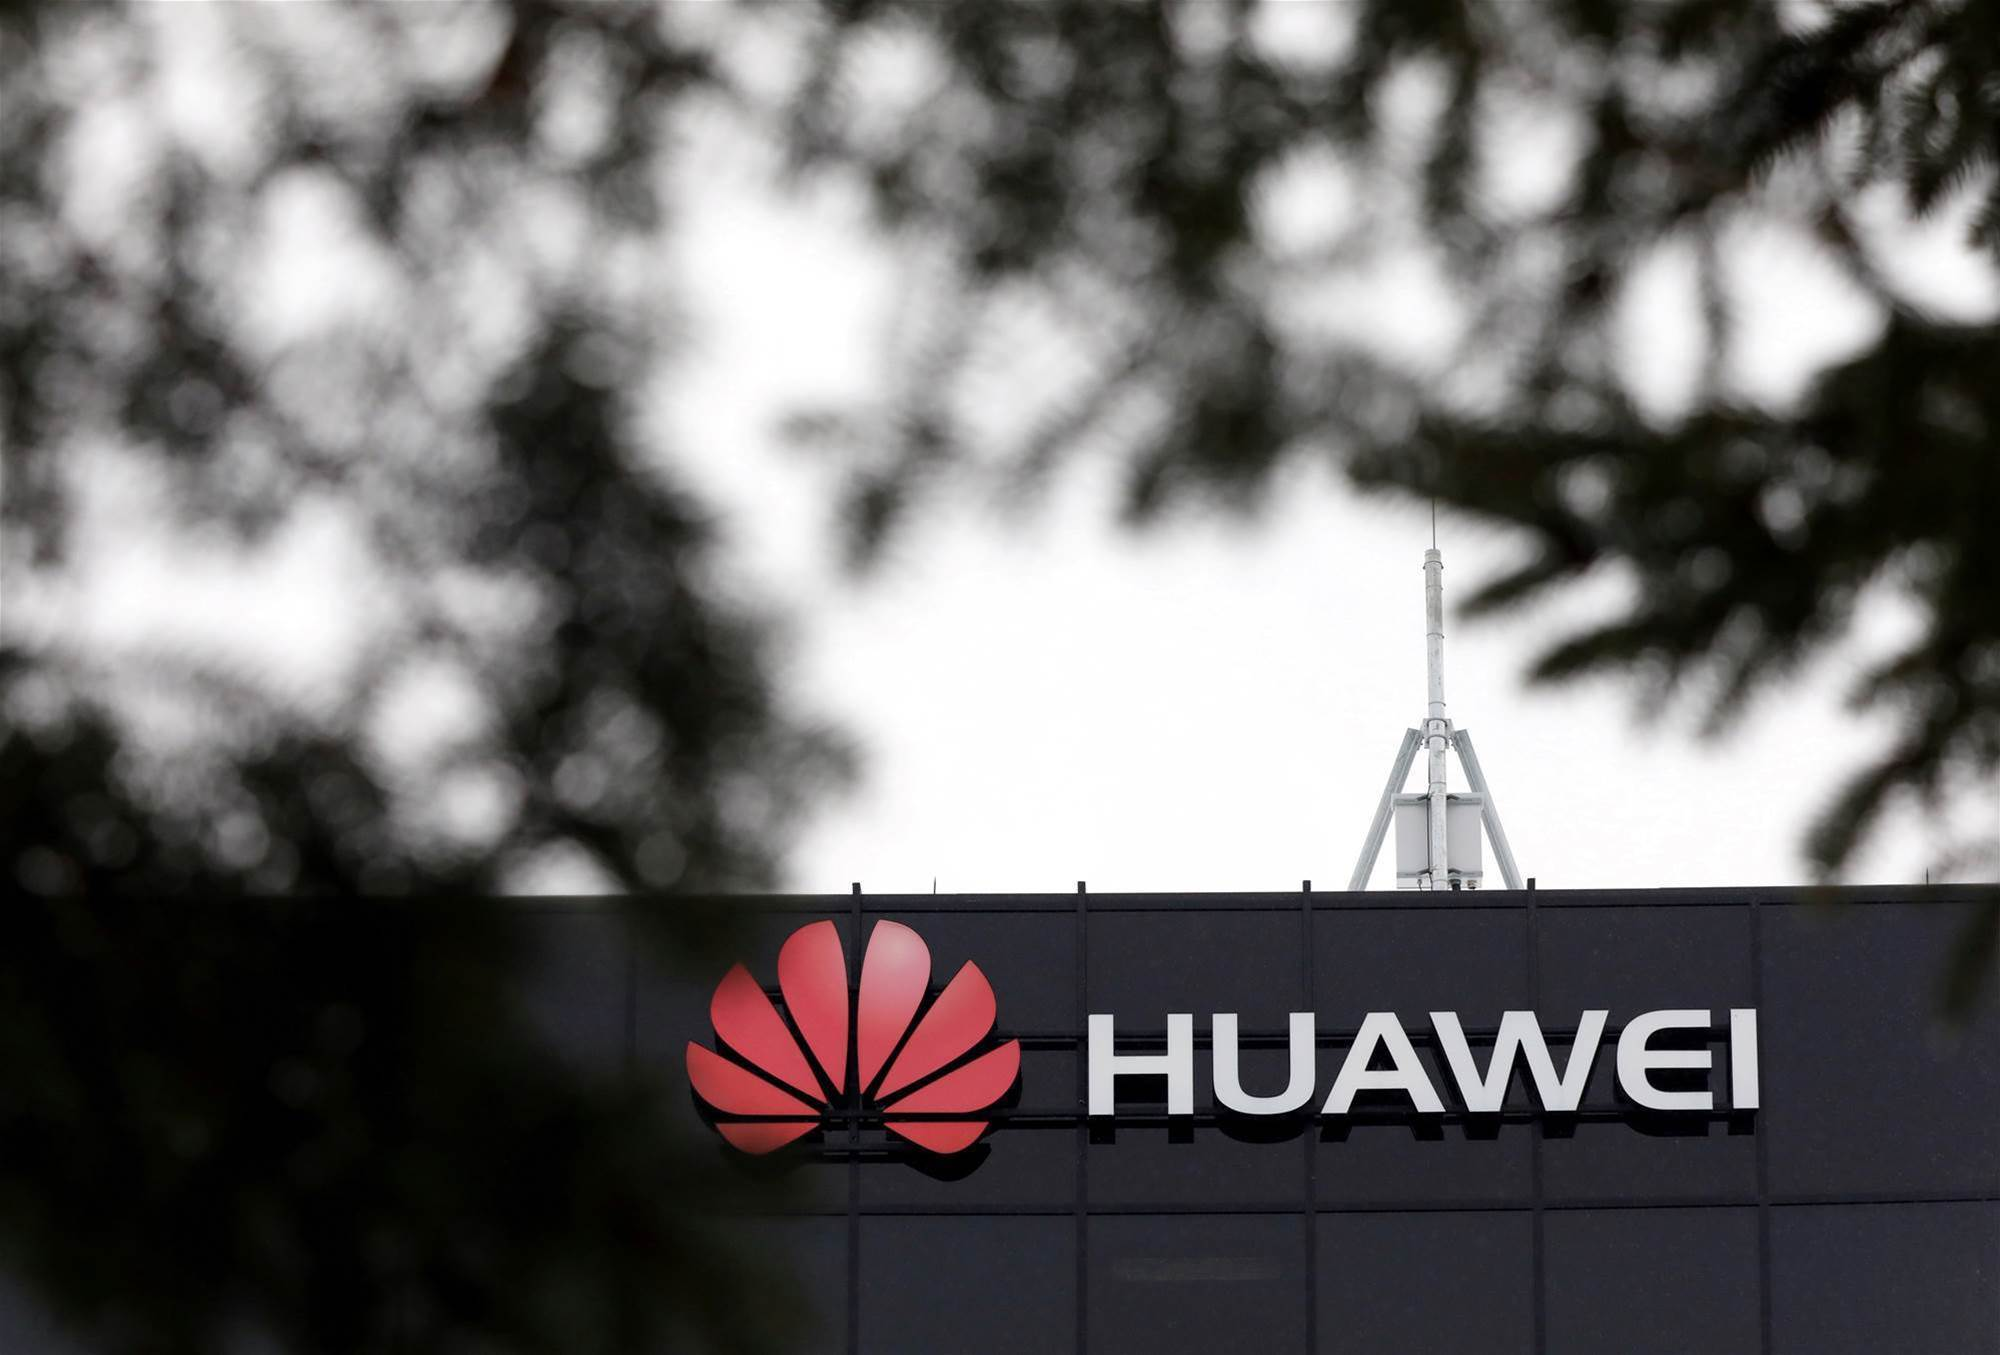 Huawei executive has strong case against extradition - Canadian envoy